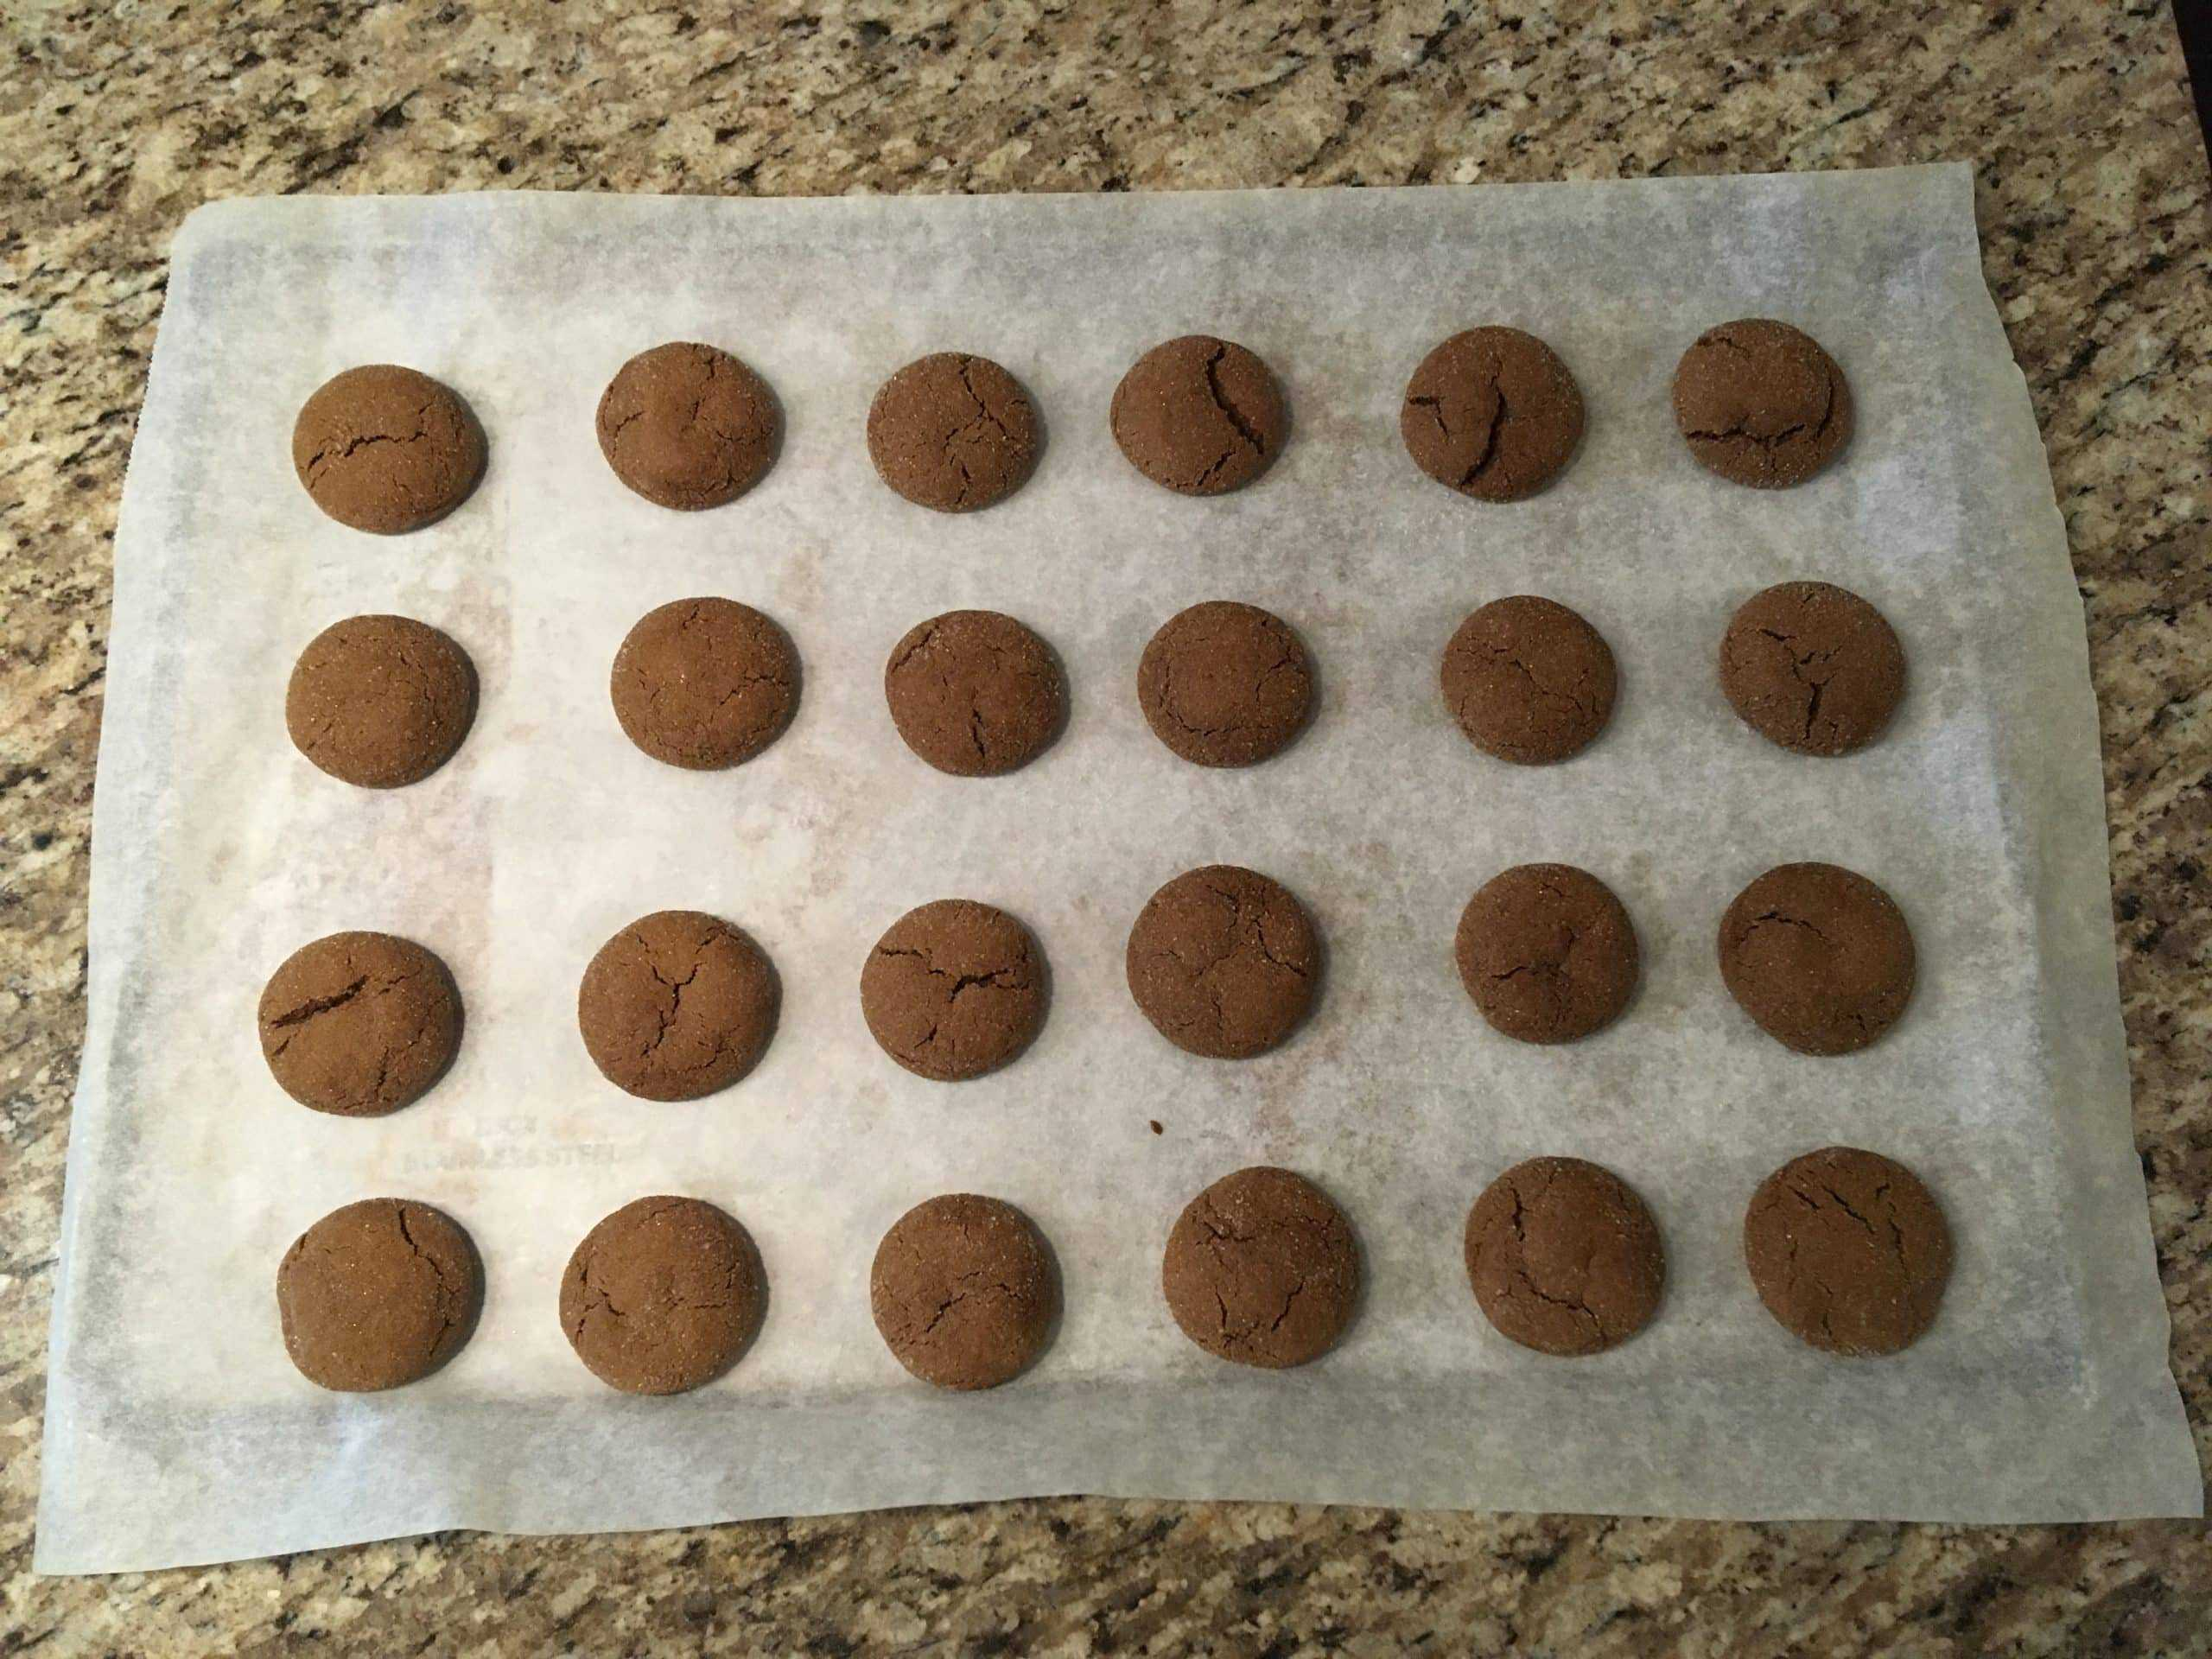 Baked cannabis molasses cookies